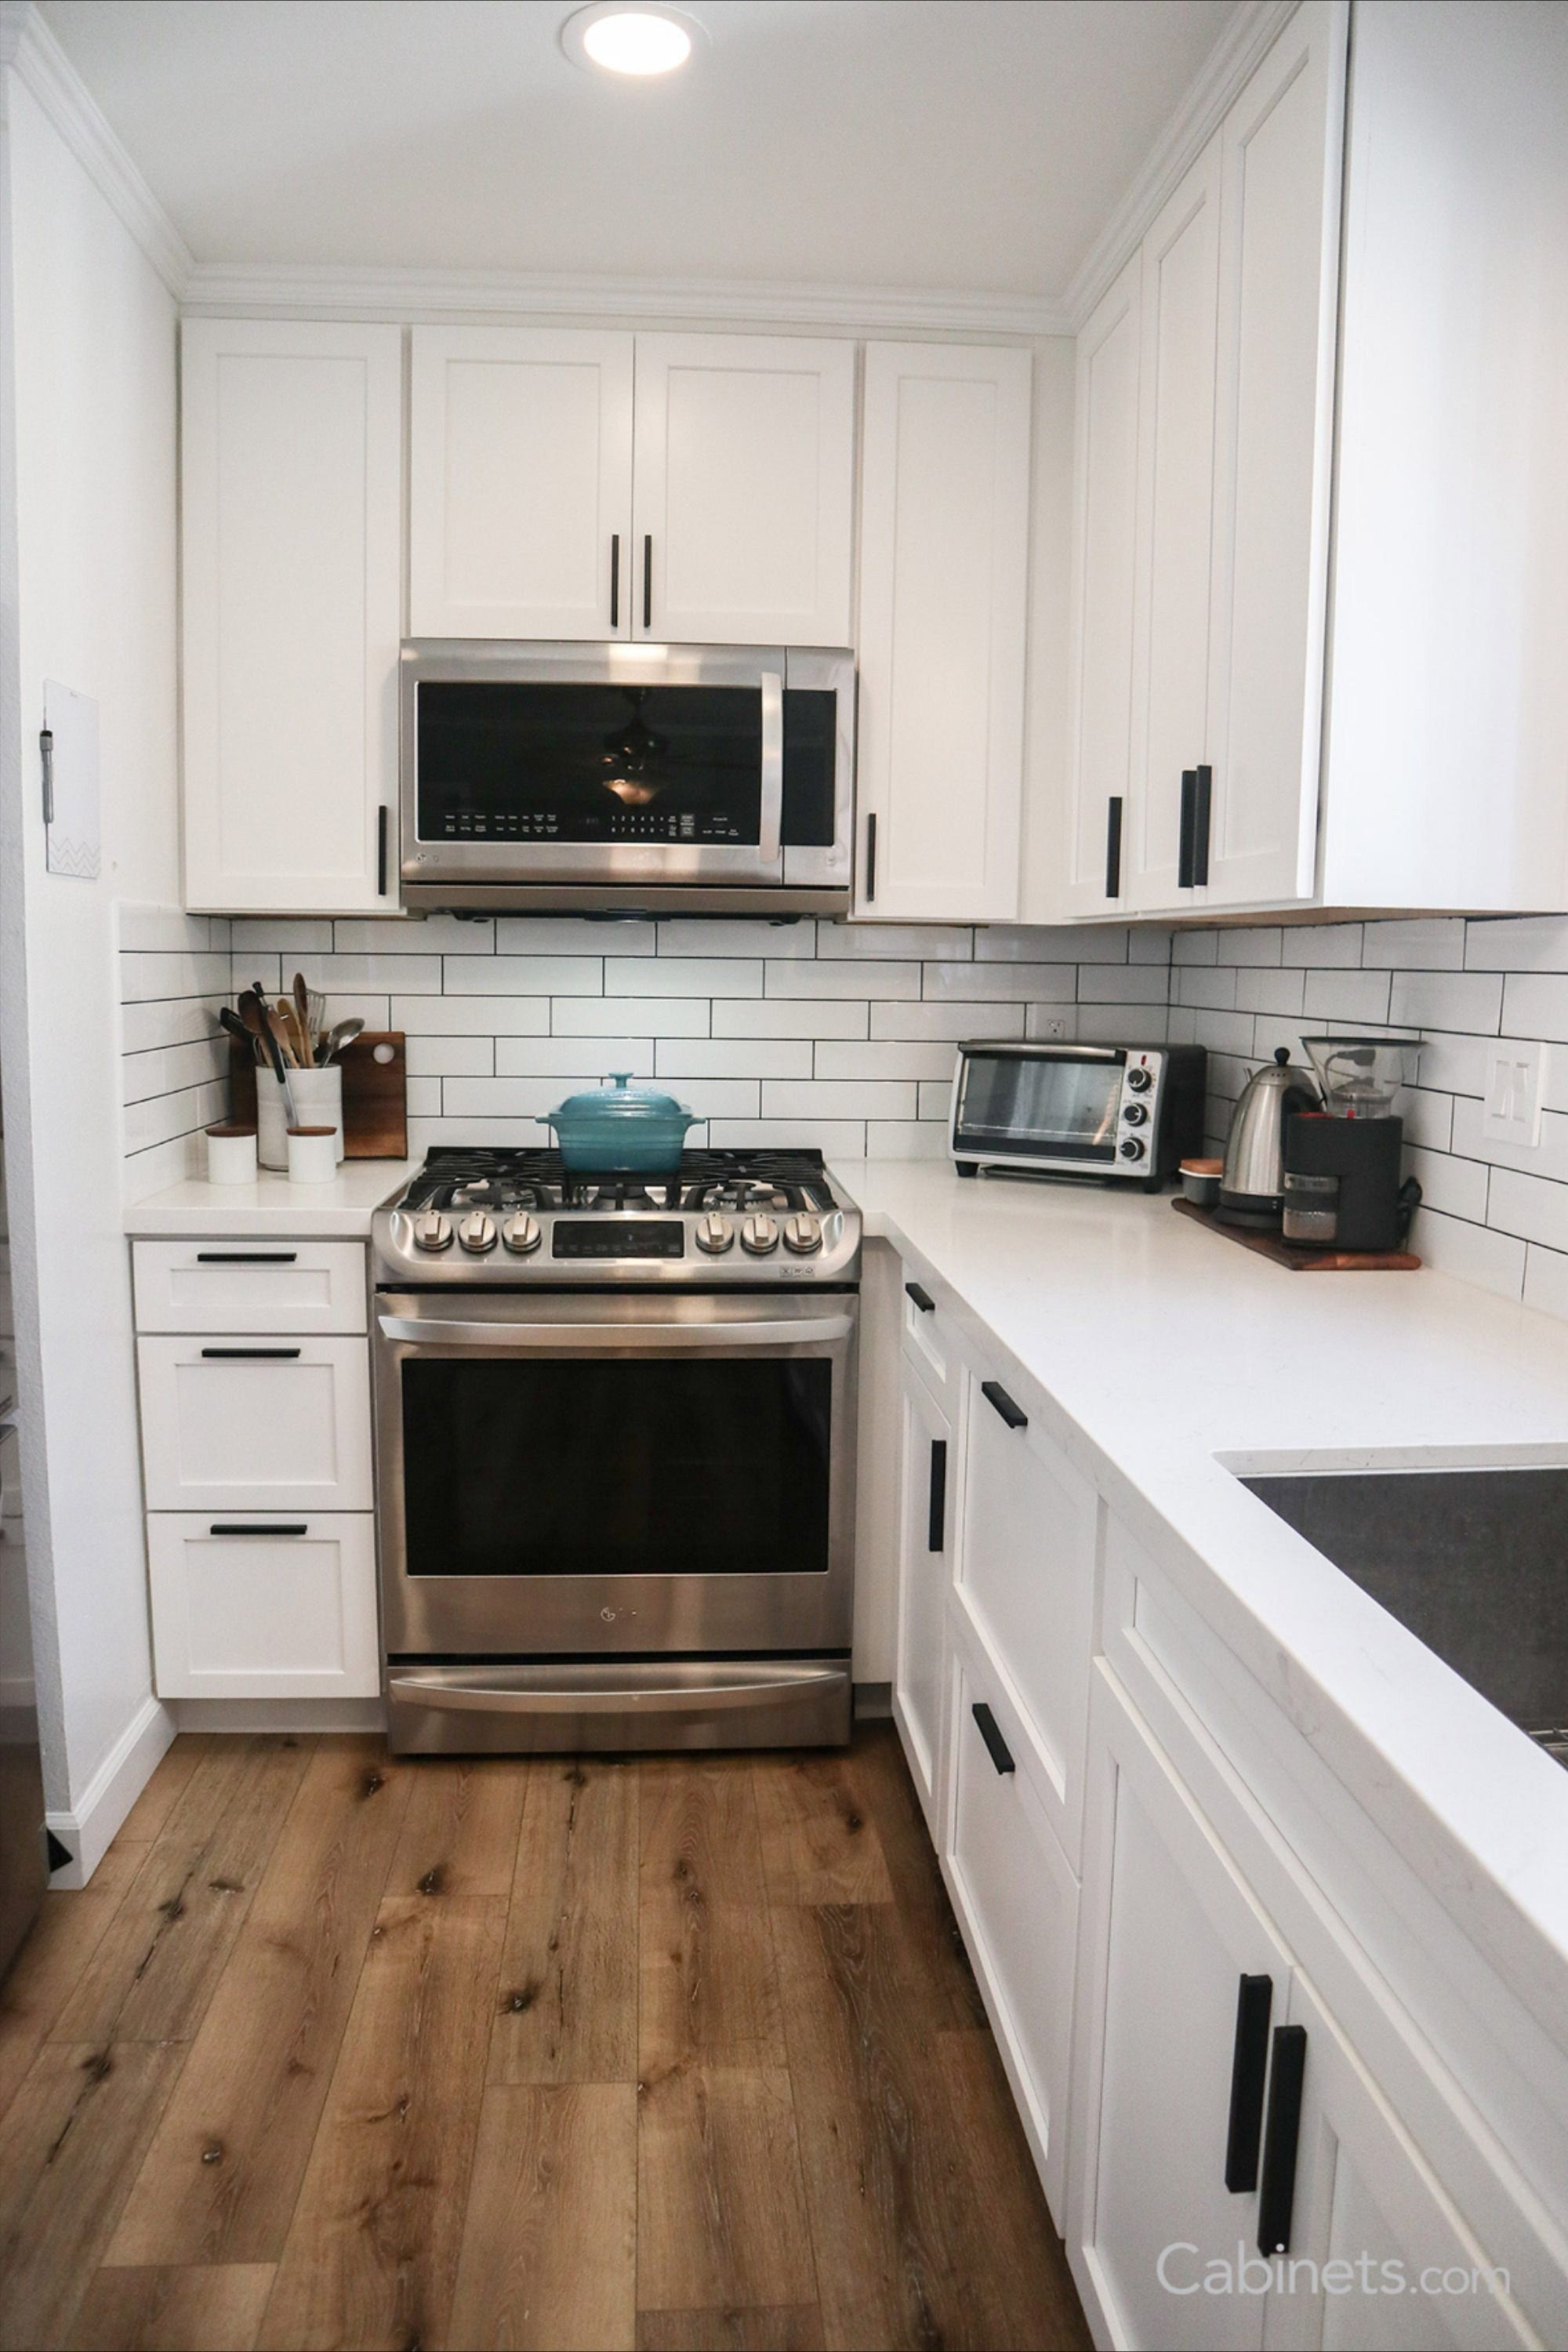 Making The Most Of A Small Space In 2020 Free Kitchen Design Kitchen Design Kitchen